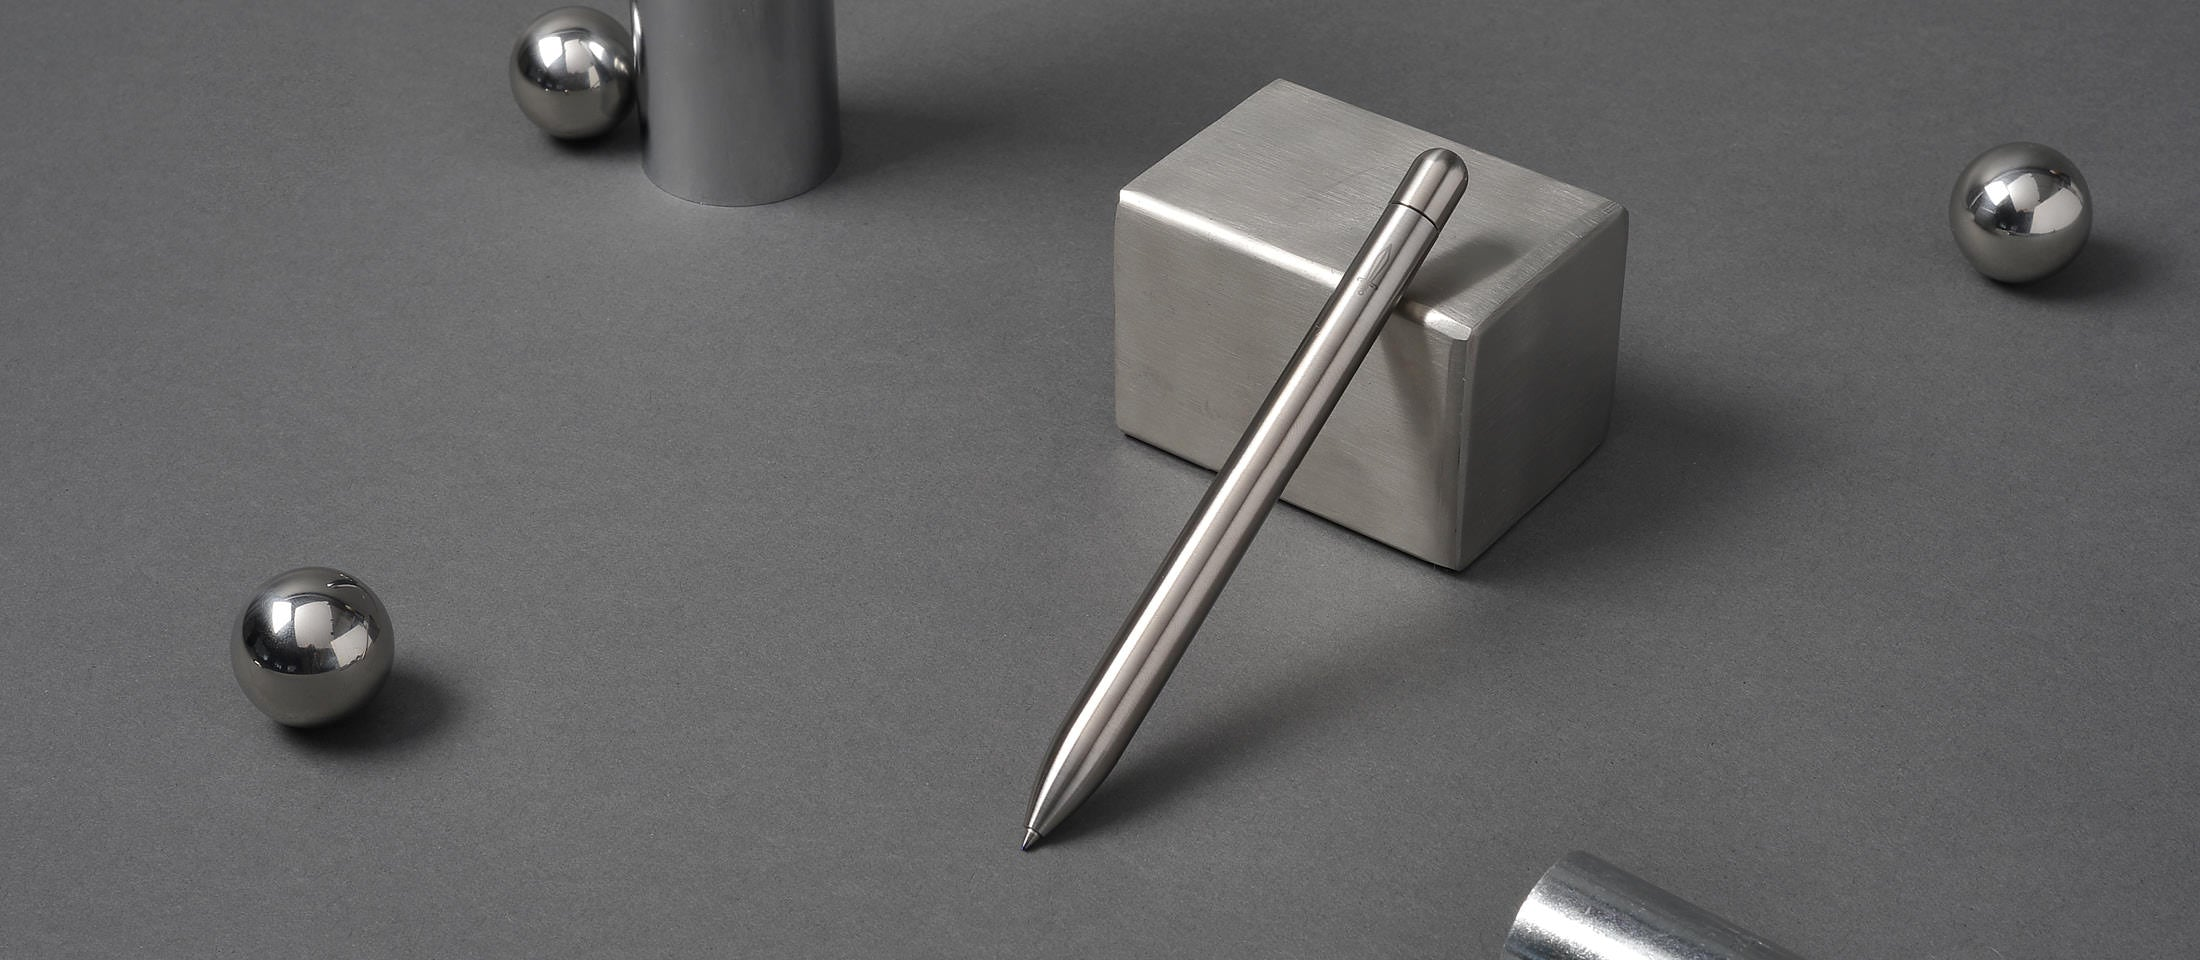 Stainless steel squire rollerball pen